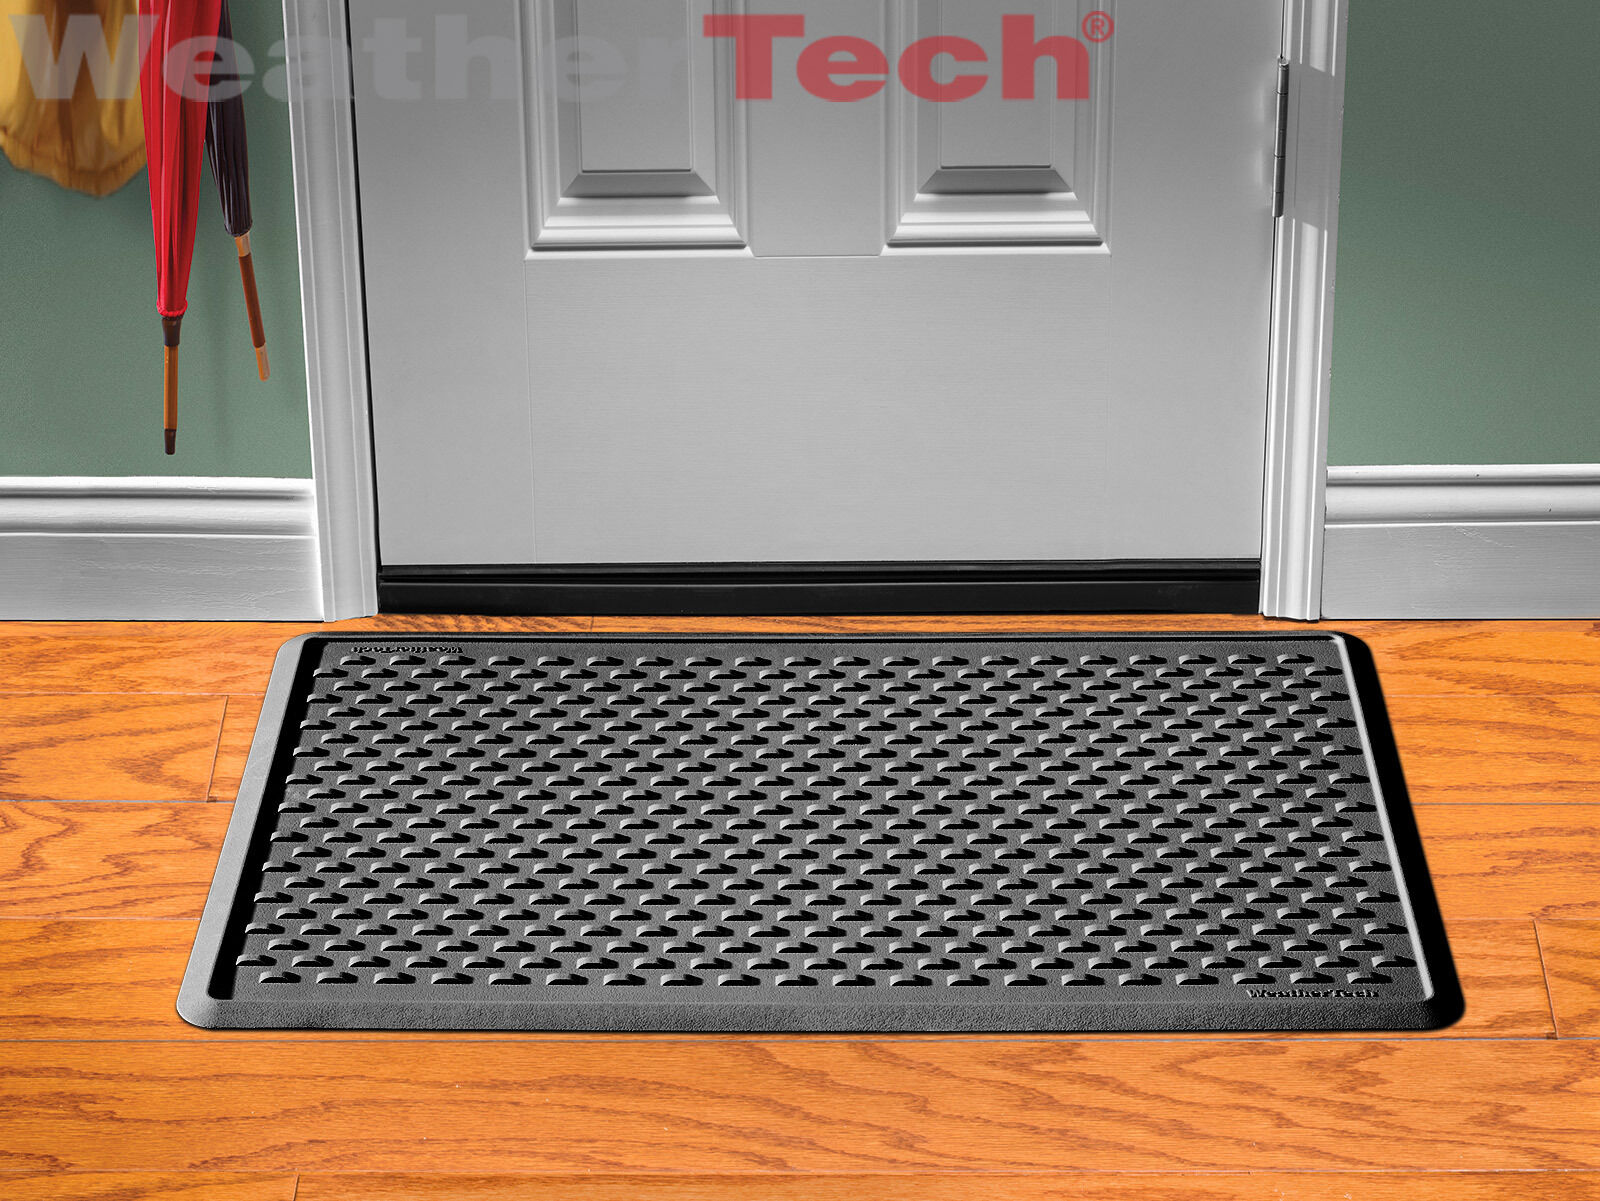 Weathertech indoormat spill proof raised lip indoor mat 3 weathertech indoormat spill proof raised lip indoor mat 3 sizes usa dailygadgetfo Image collections